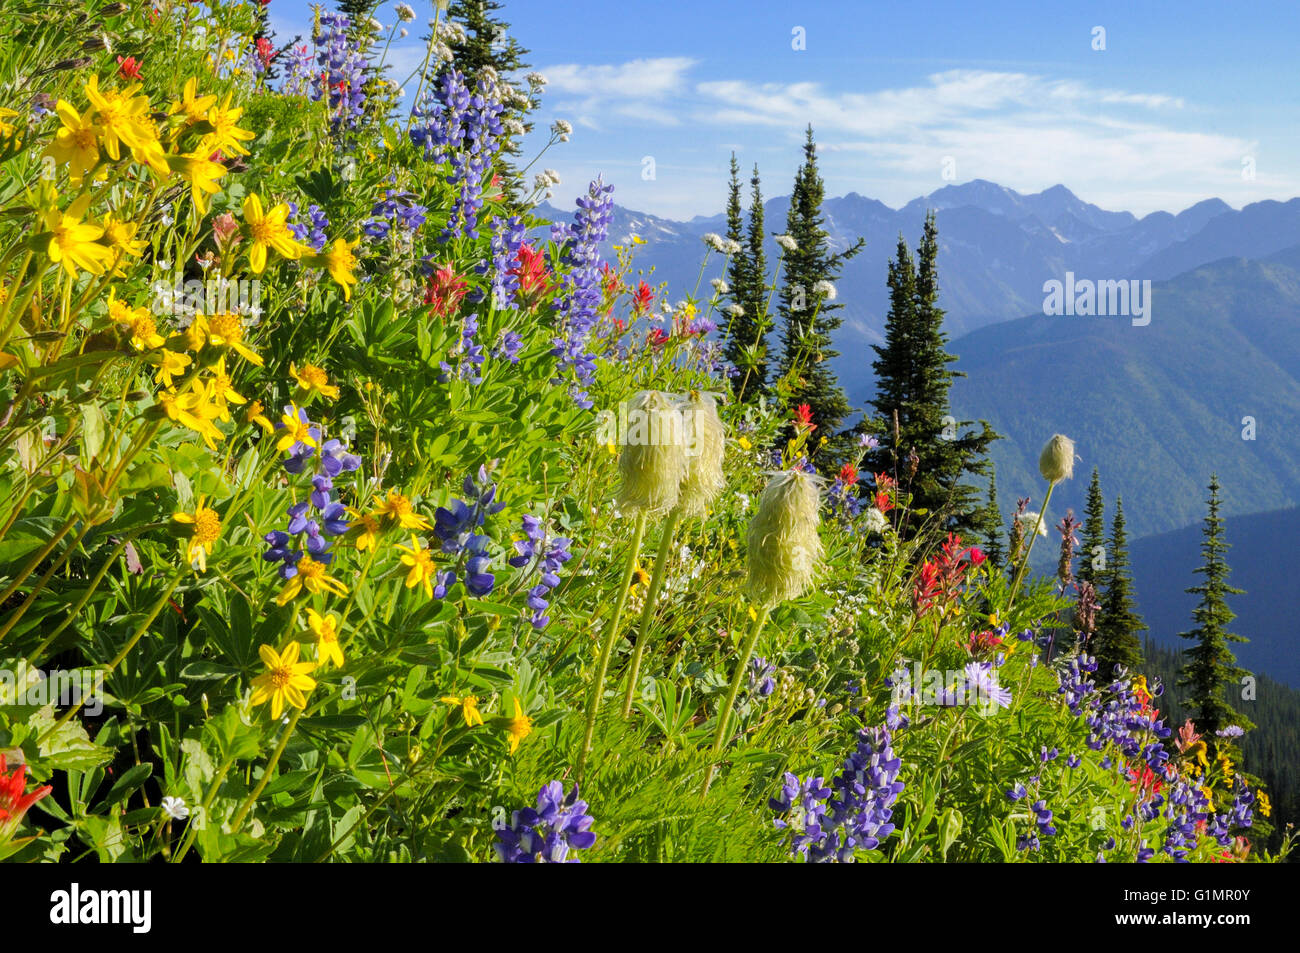 Wildflowers, Idaho Peak, Selkirk Mountains, British Columbia, Canada - Stock Image